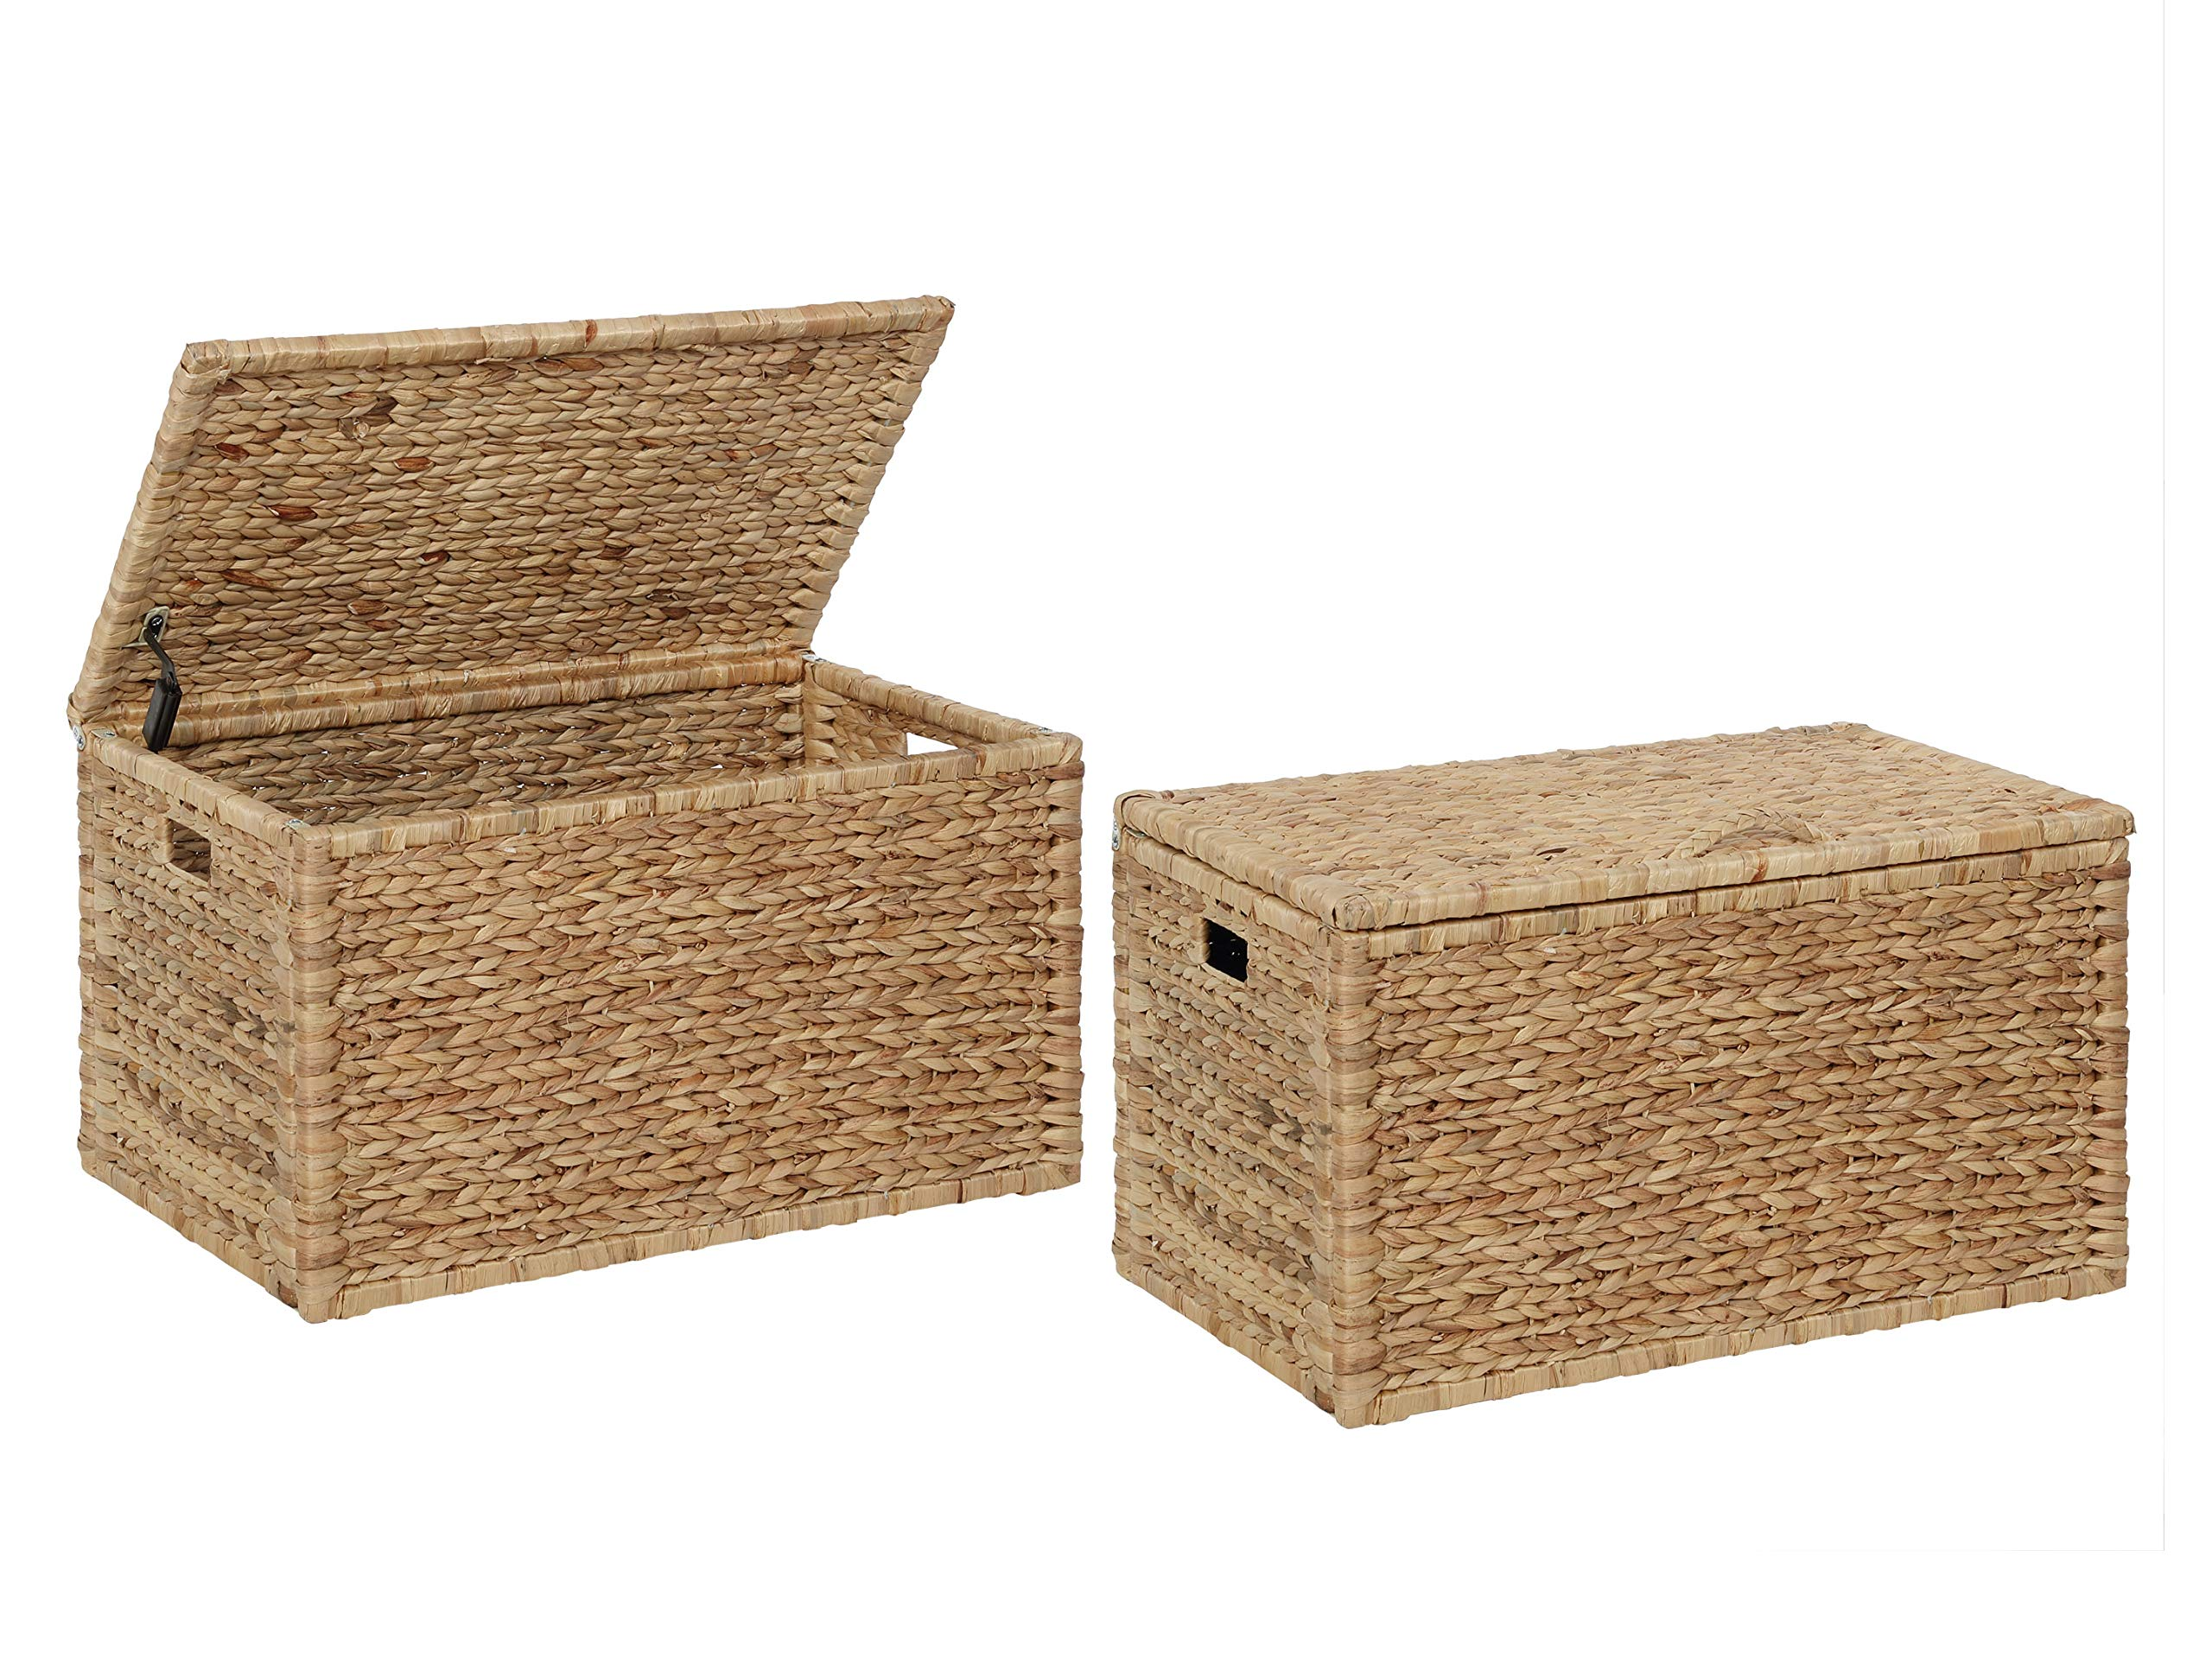 eHemco Heavy Duty Water Hyacinth Storage Trunk in Natural Color by eHemco